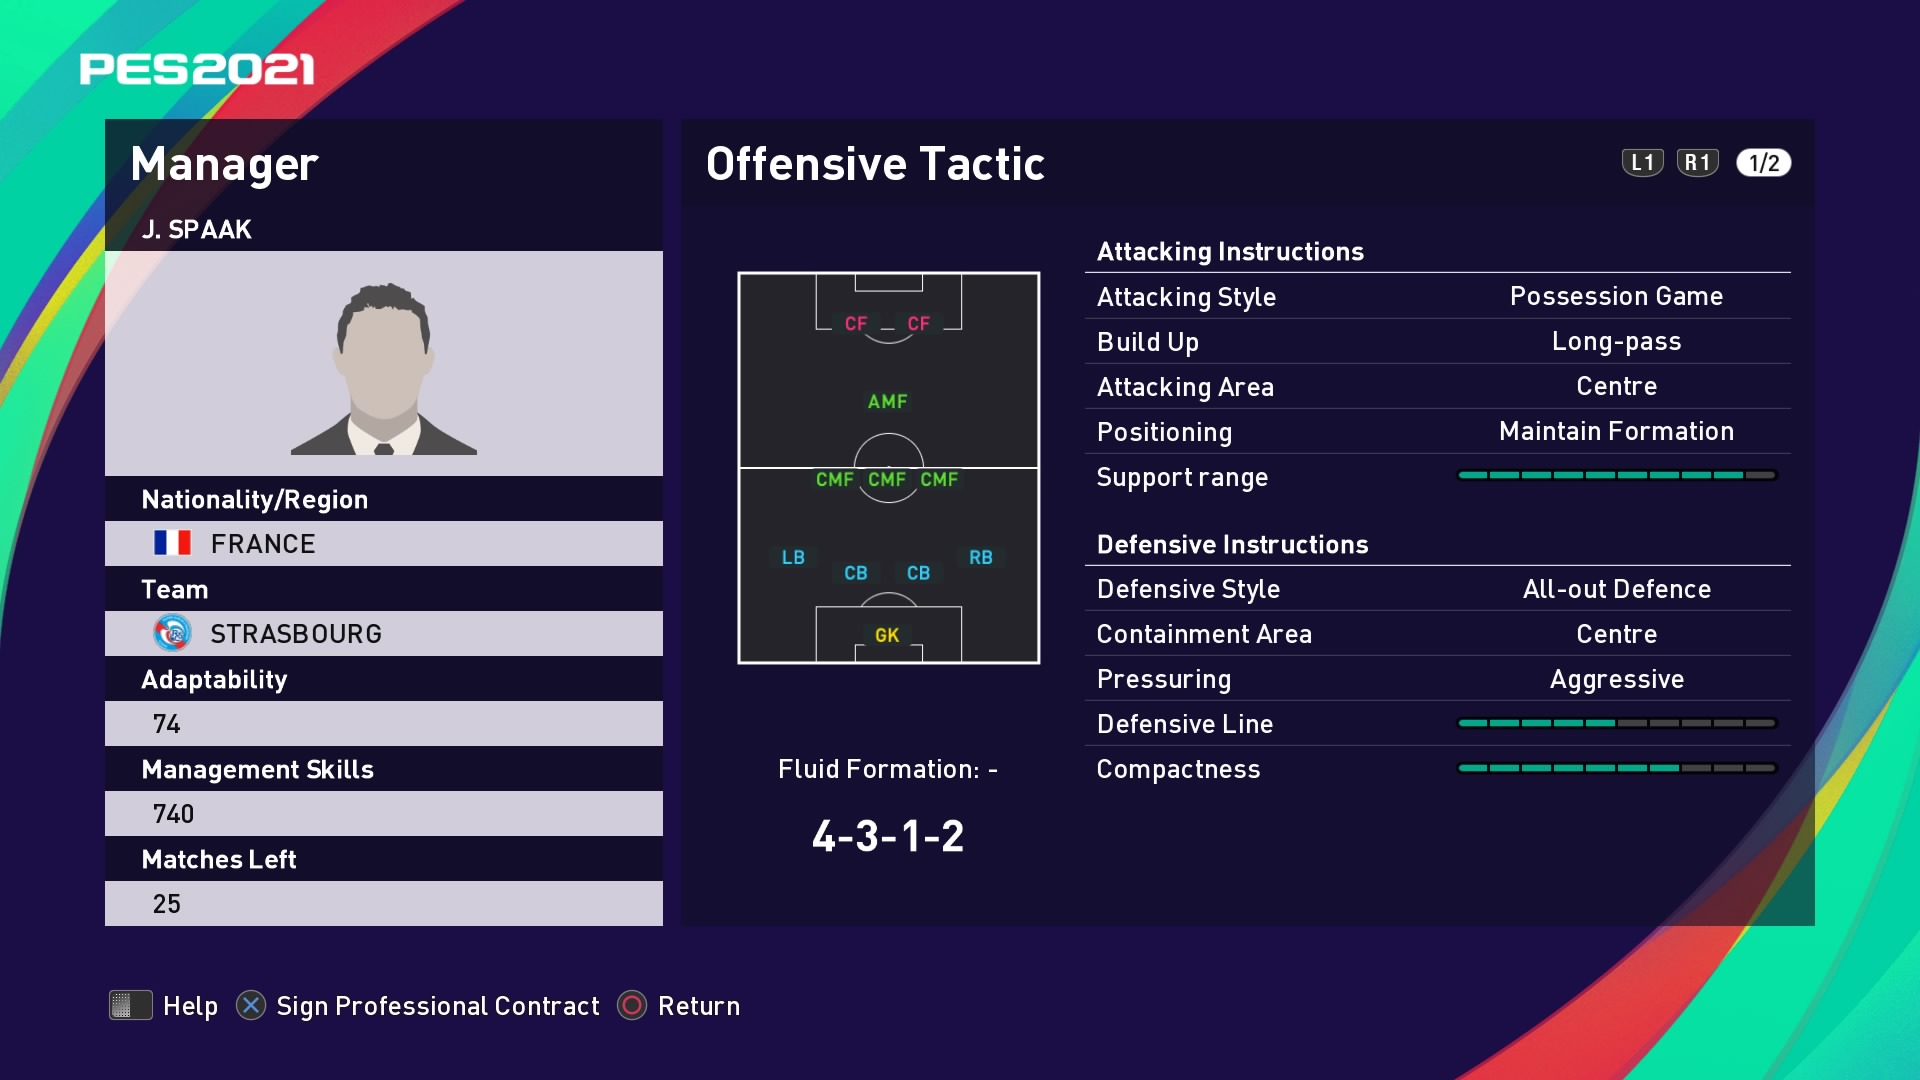 J. Spaak (Thierry Laurey) Offensive Tactic in PES 2021 myClub